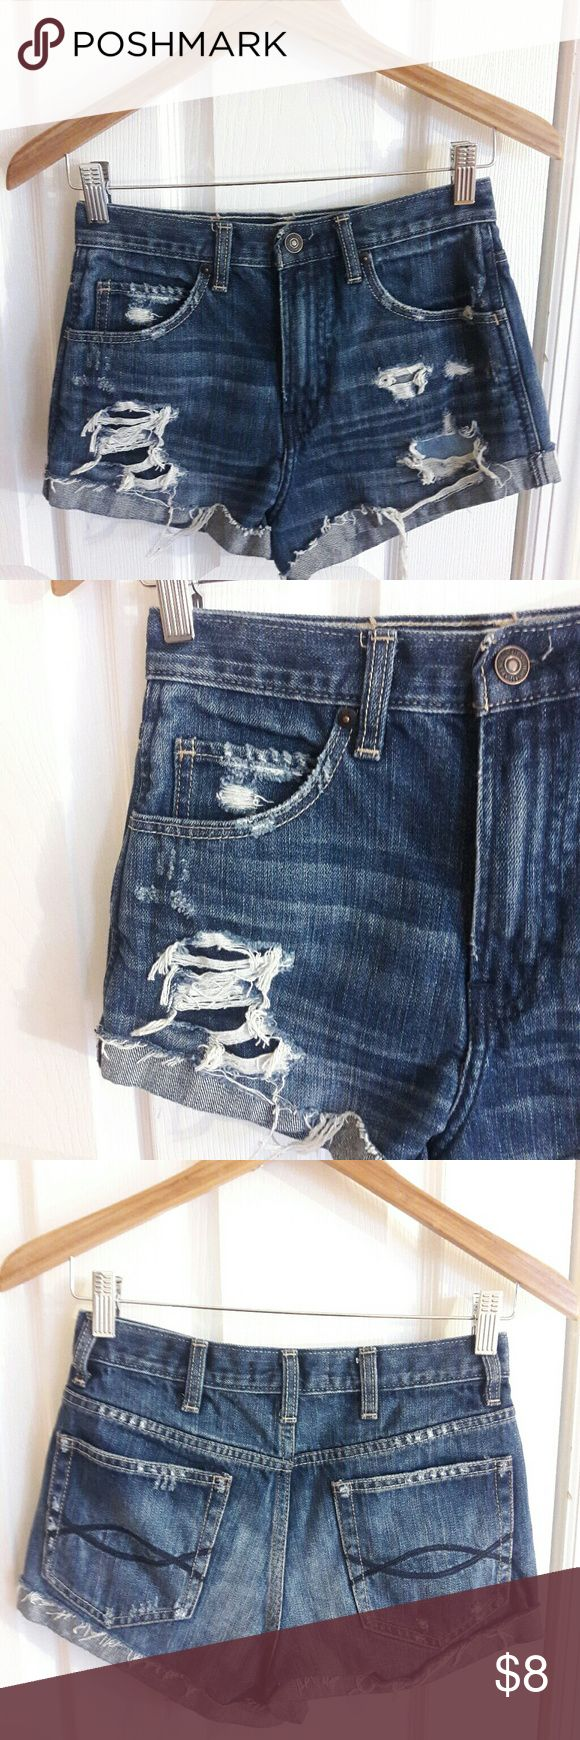 Abercrombie & Fitch Ripped Denim Skirt size 0 Ripped Denim Shorts with front and back pockets, in size 0, w 25. Abercrombie & Fitch Shorts Jean Shorts